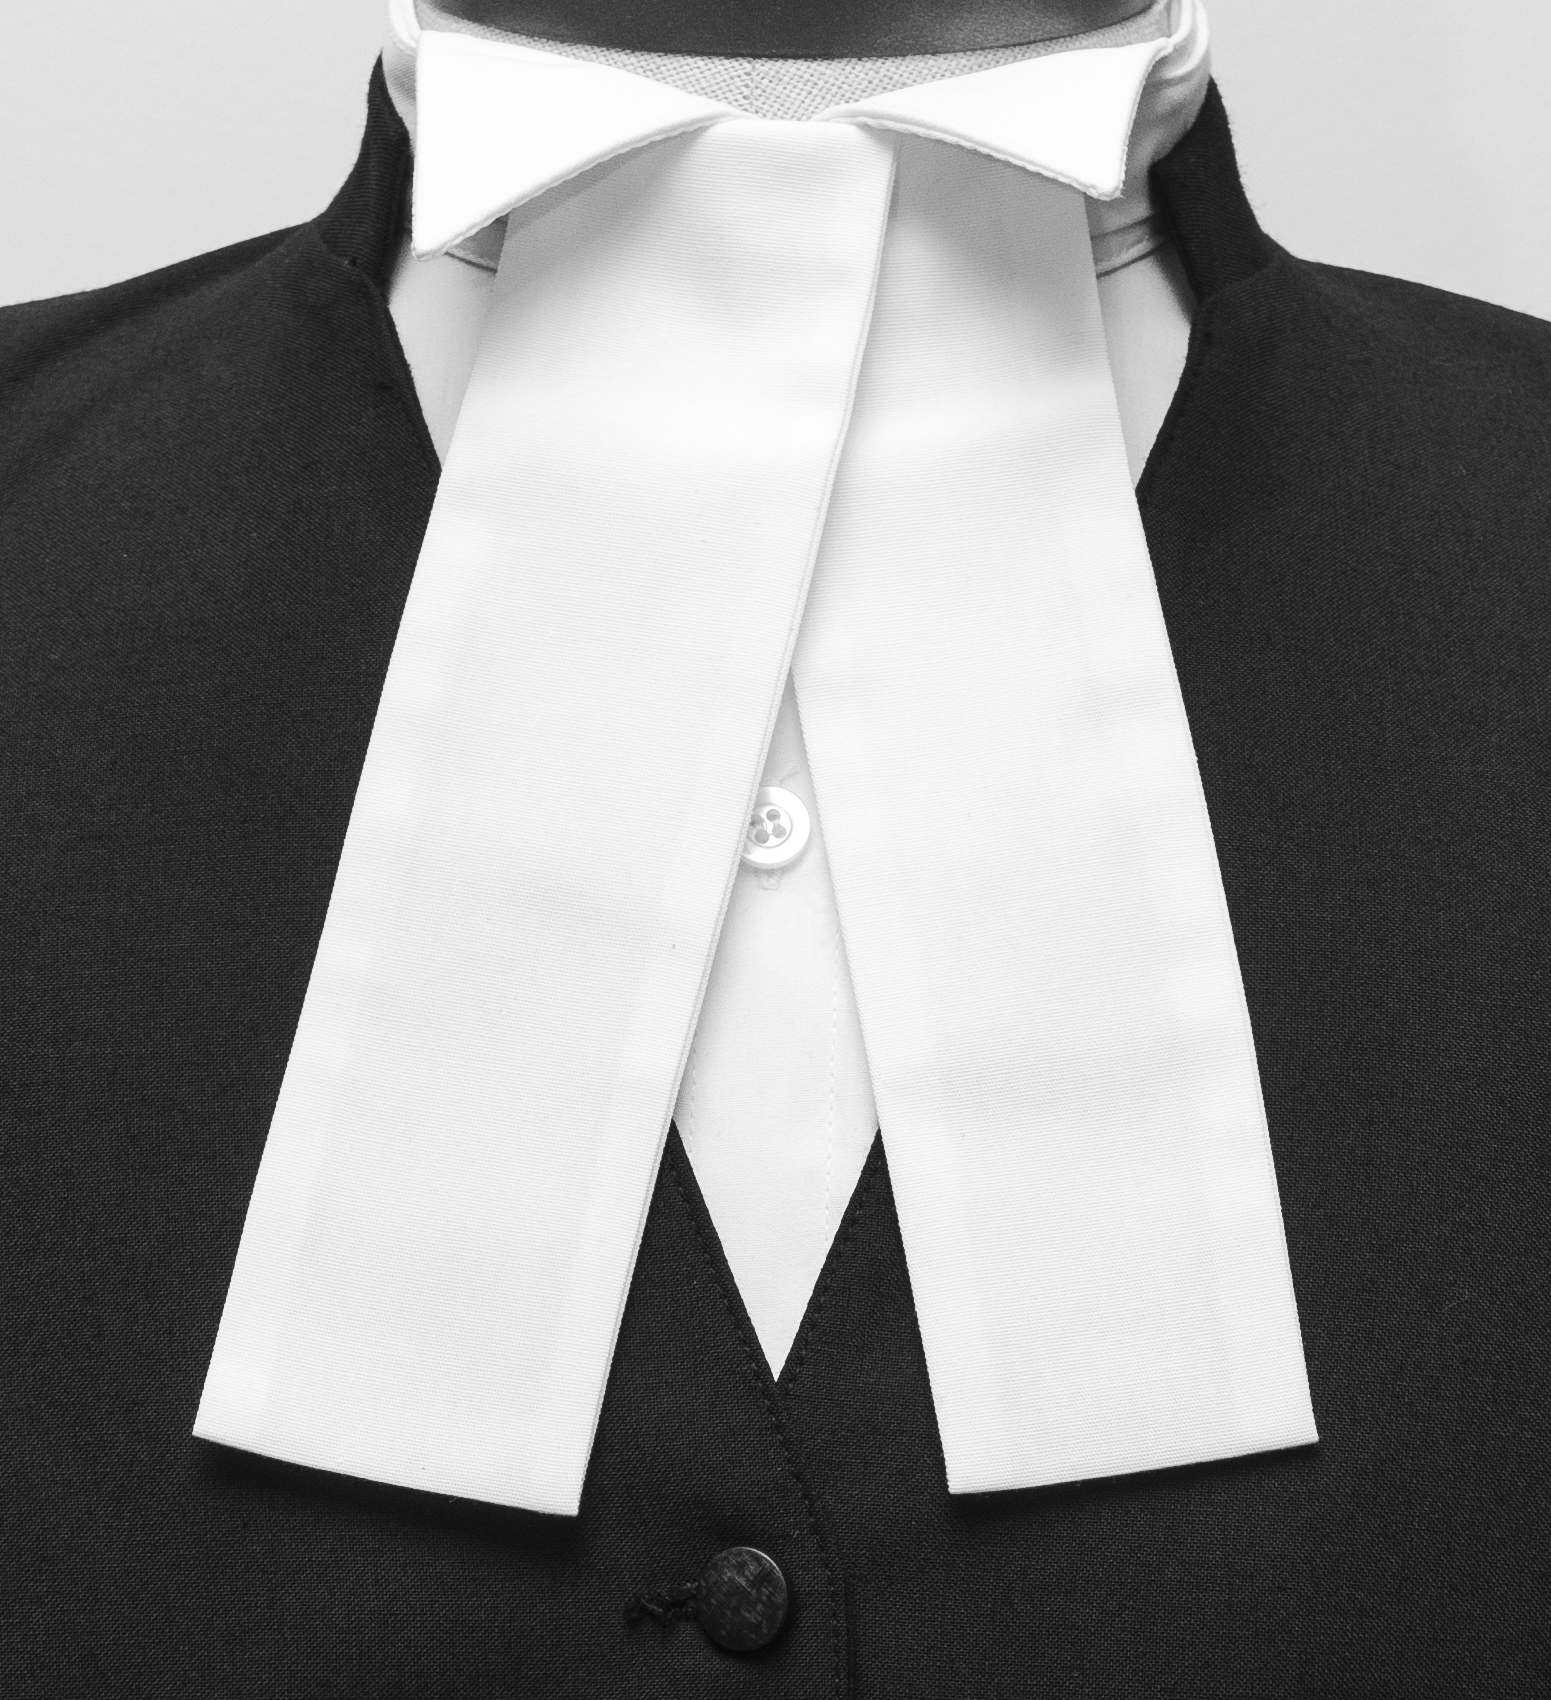 BARRISTERS ROBES